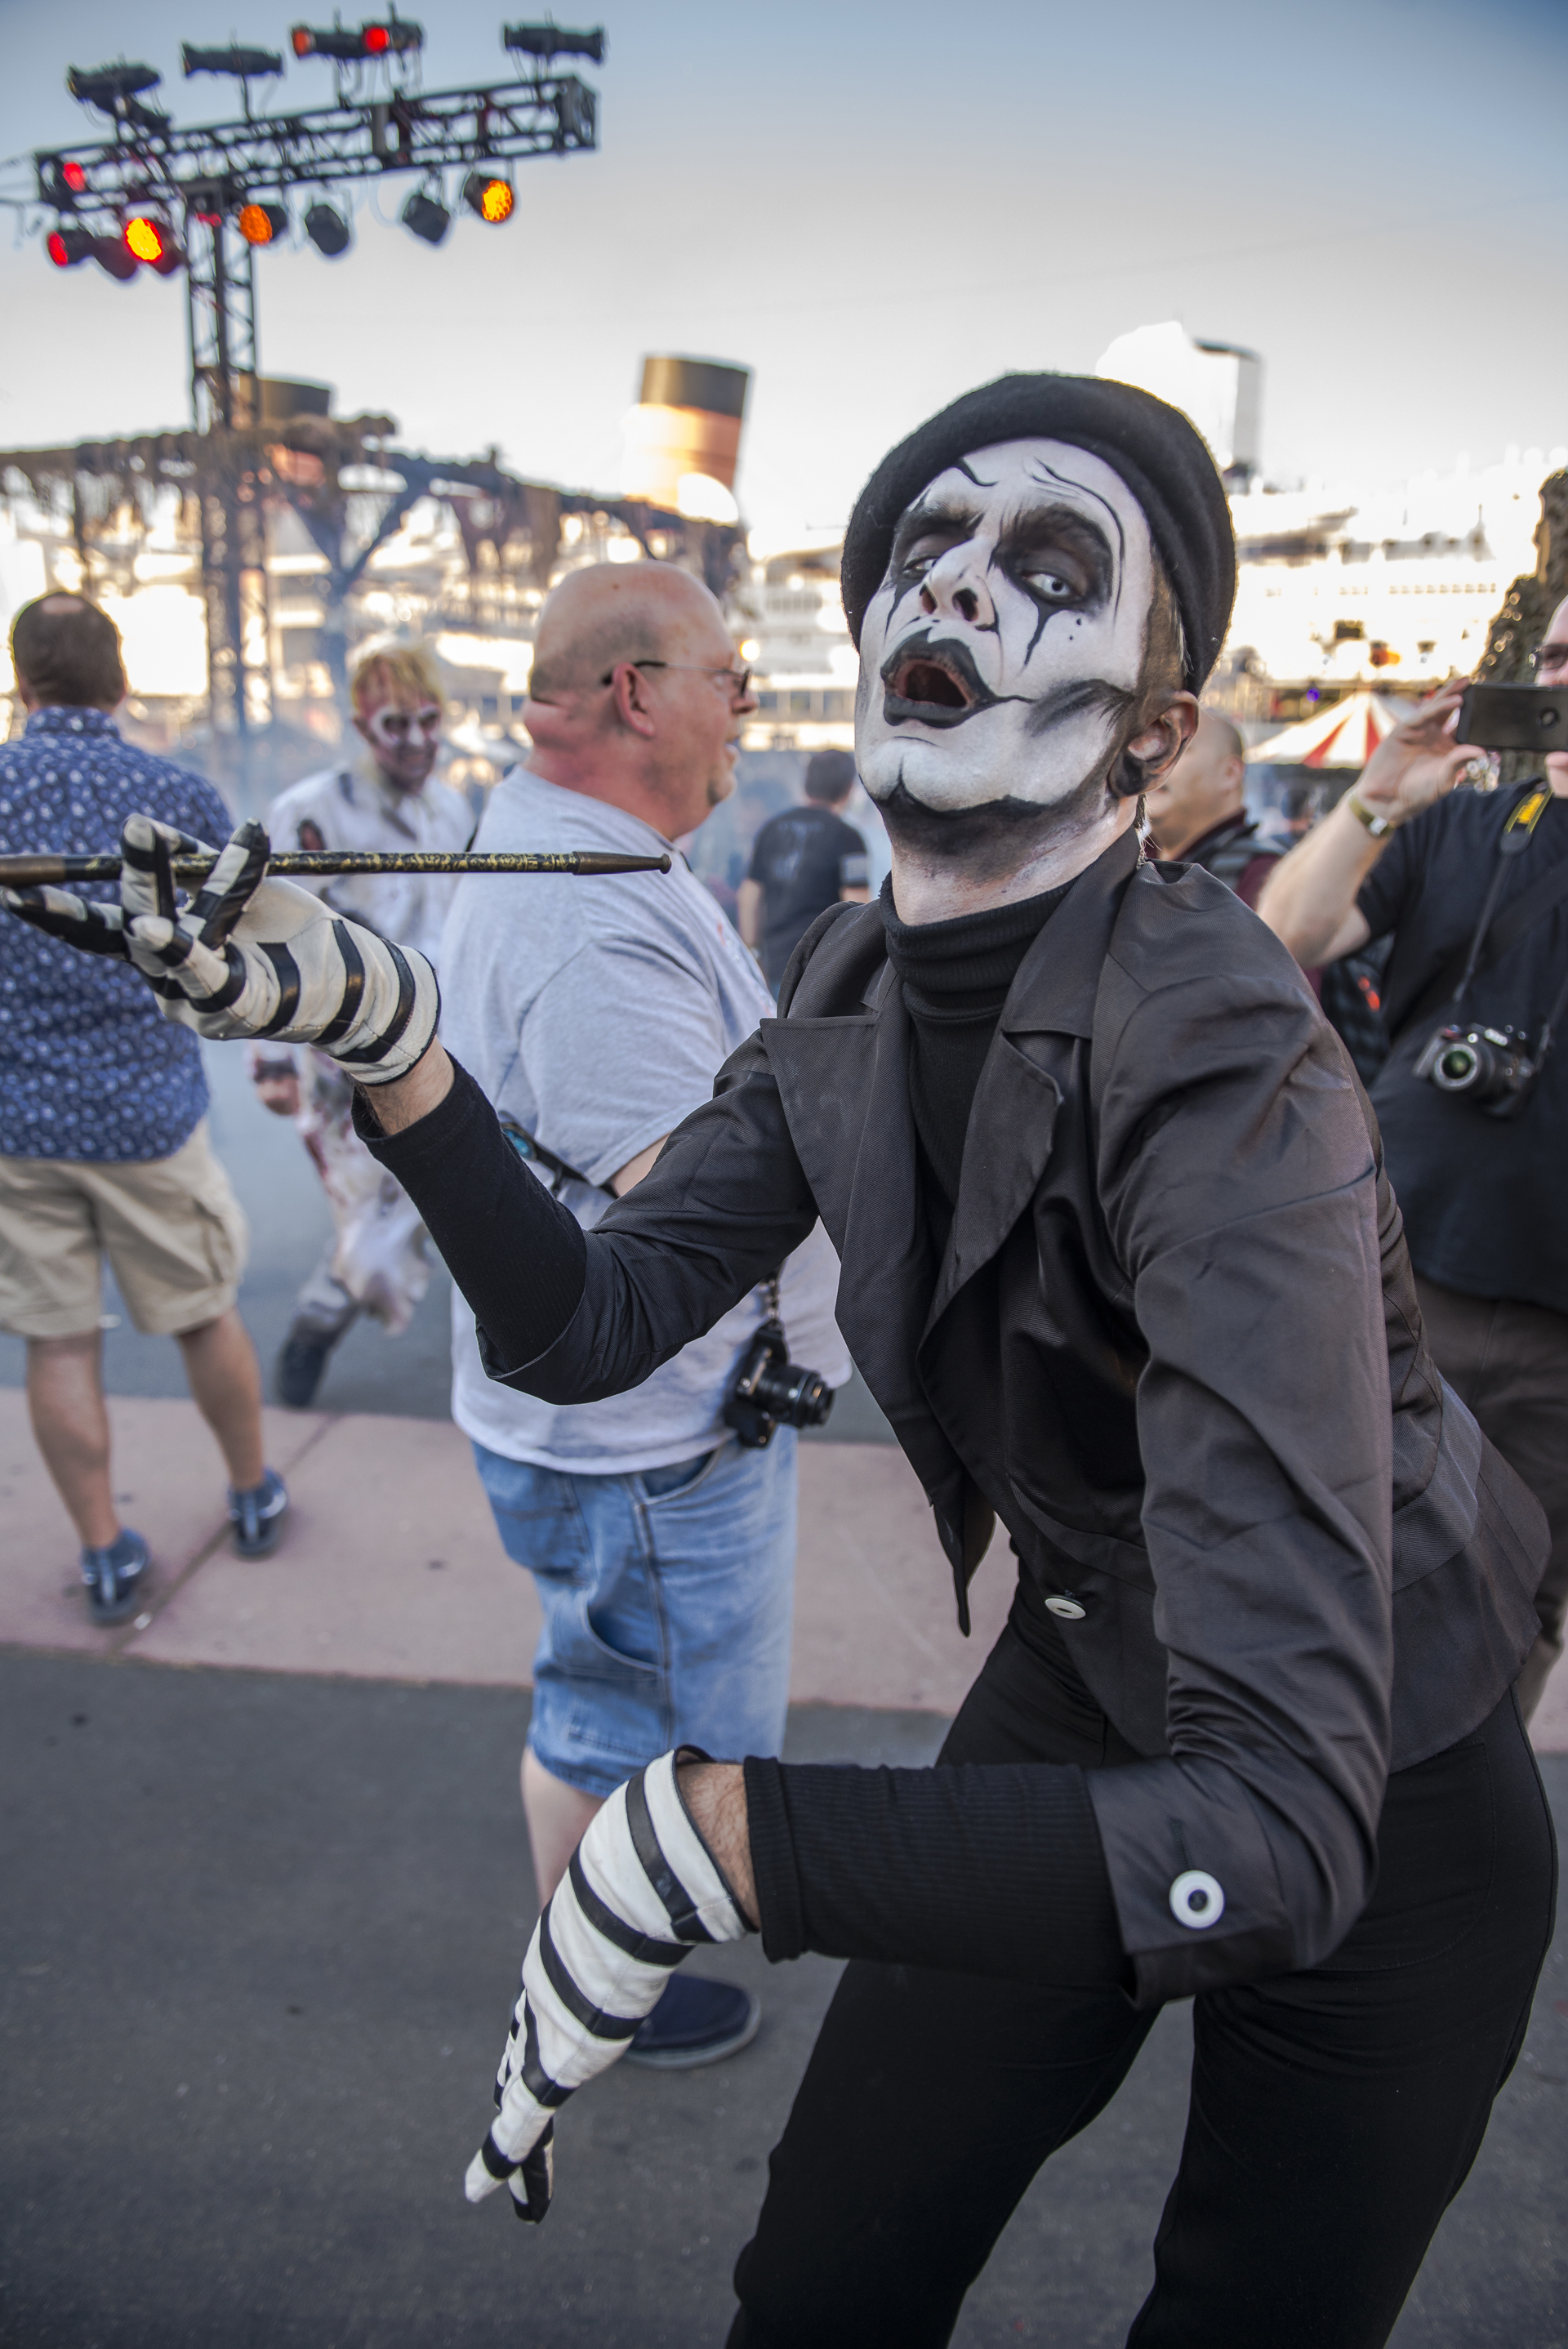 The mime is not impressed.